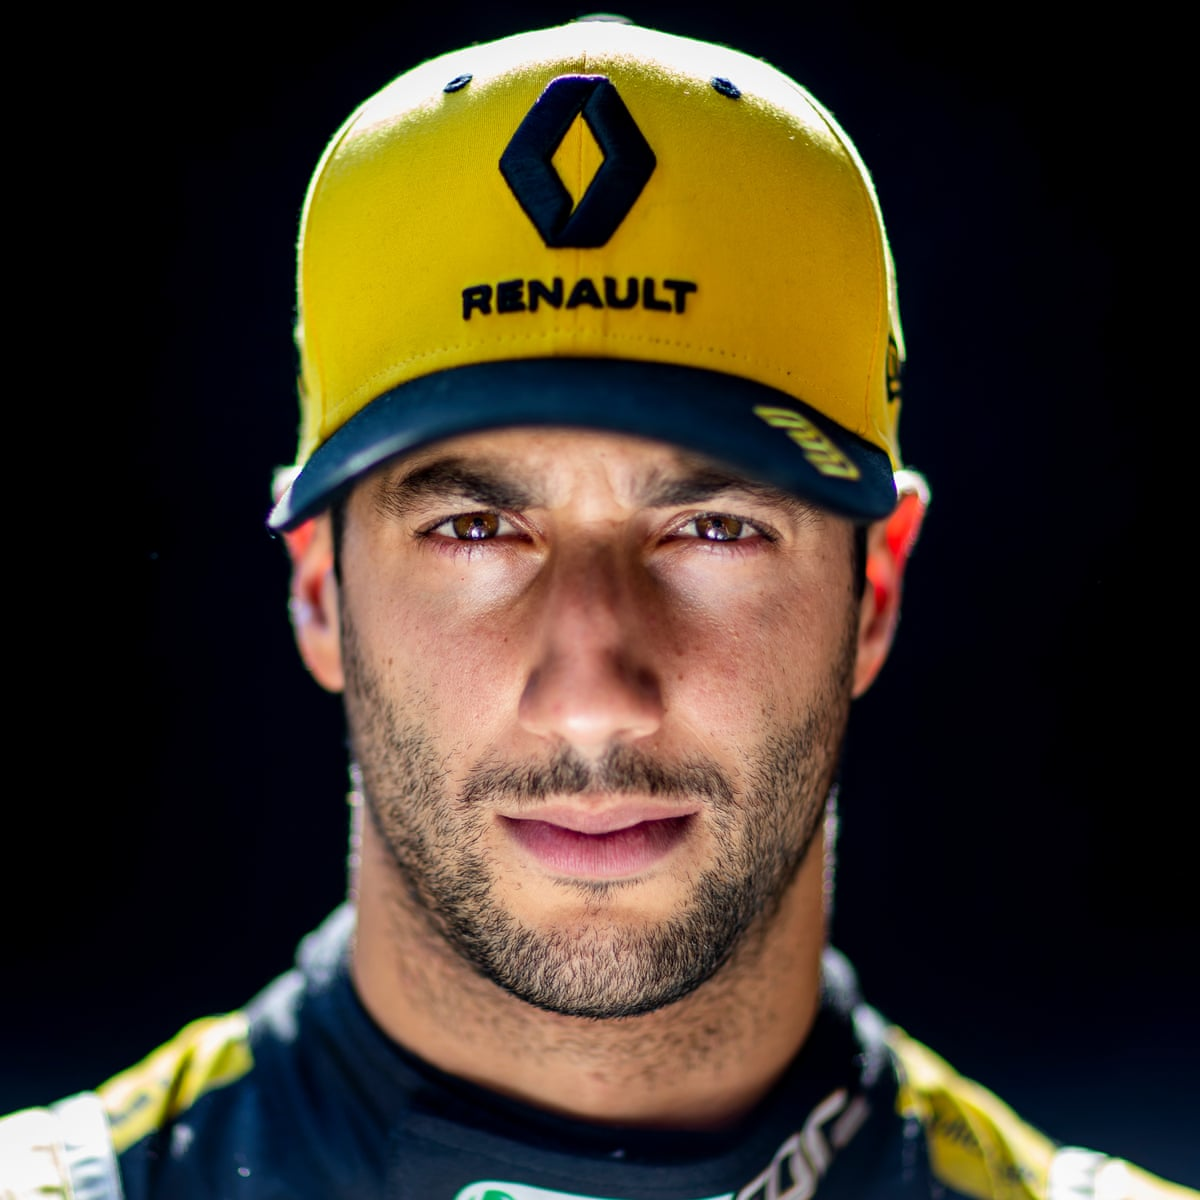 Daniel Ricciardo There Was More Risk Staying Renault Excited Me Daniel Ricciardo The Guardian